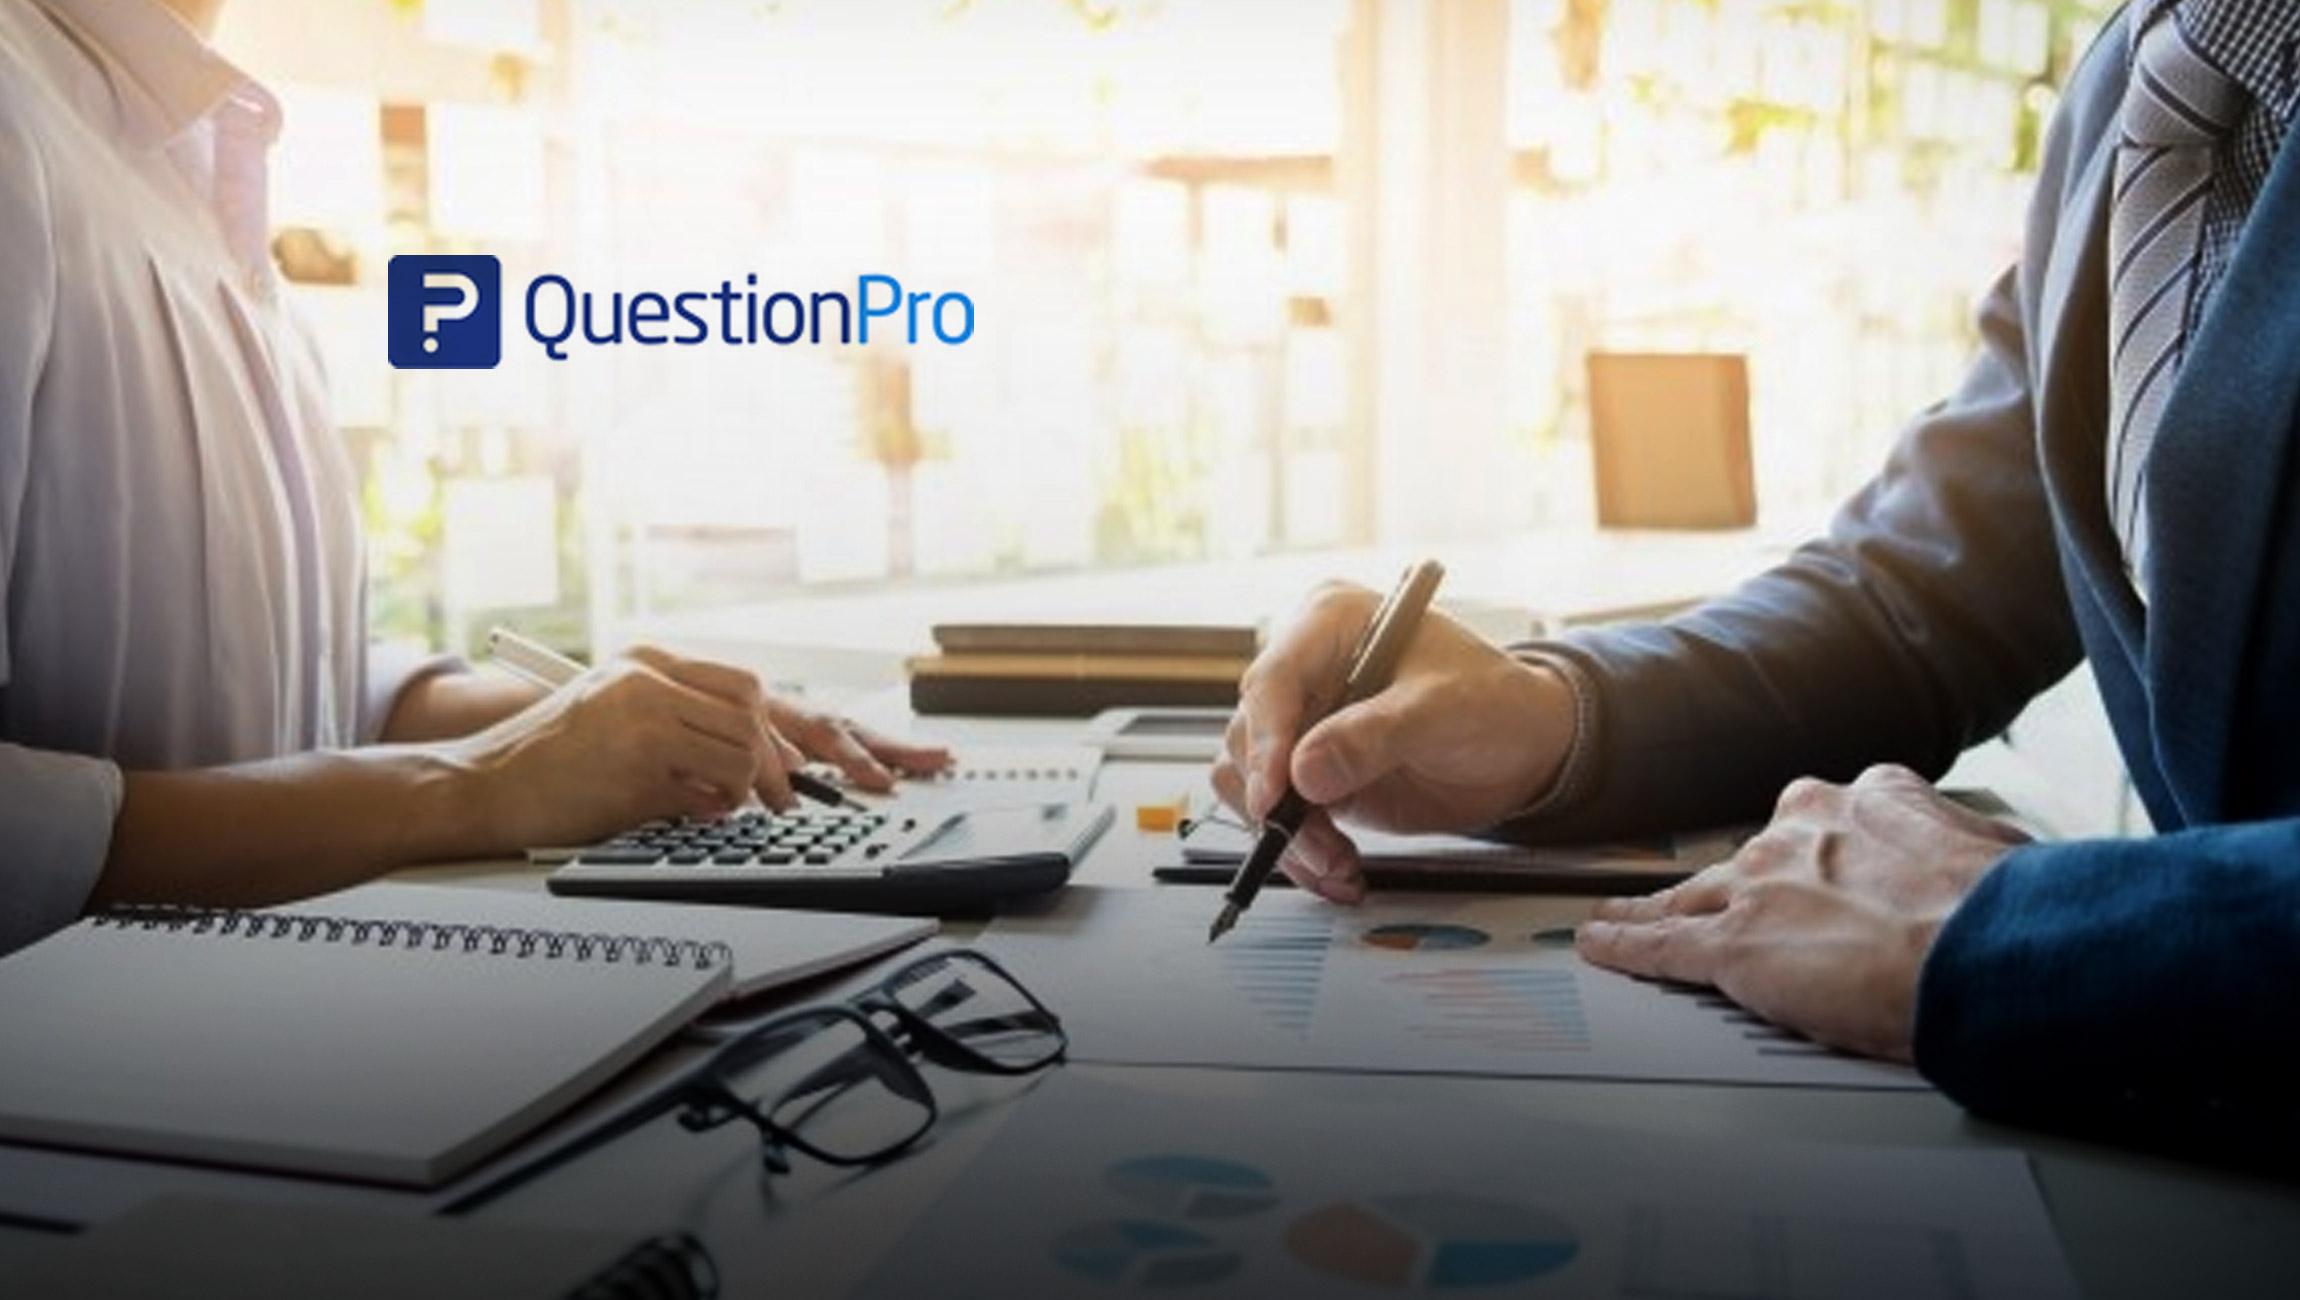 QuestionPro Announces New Products, Features and Tools at XDay 2020 North America